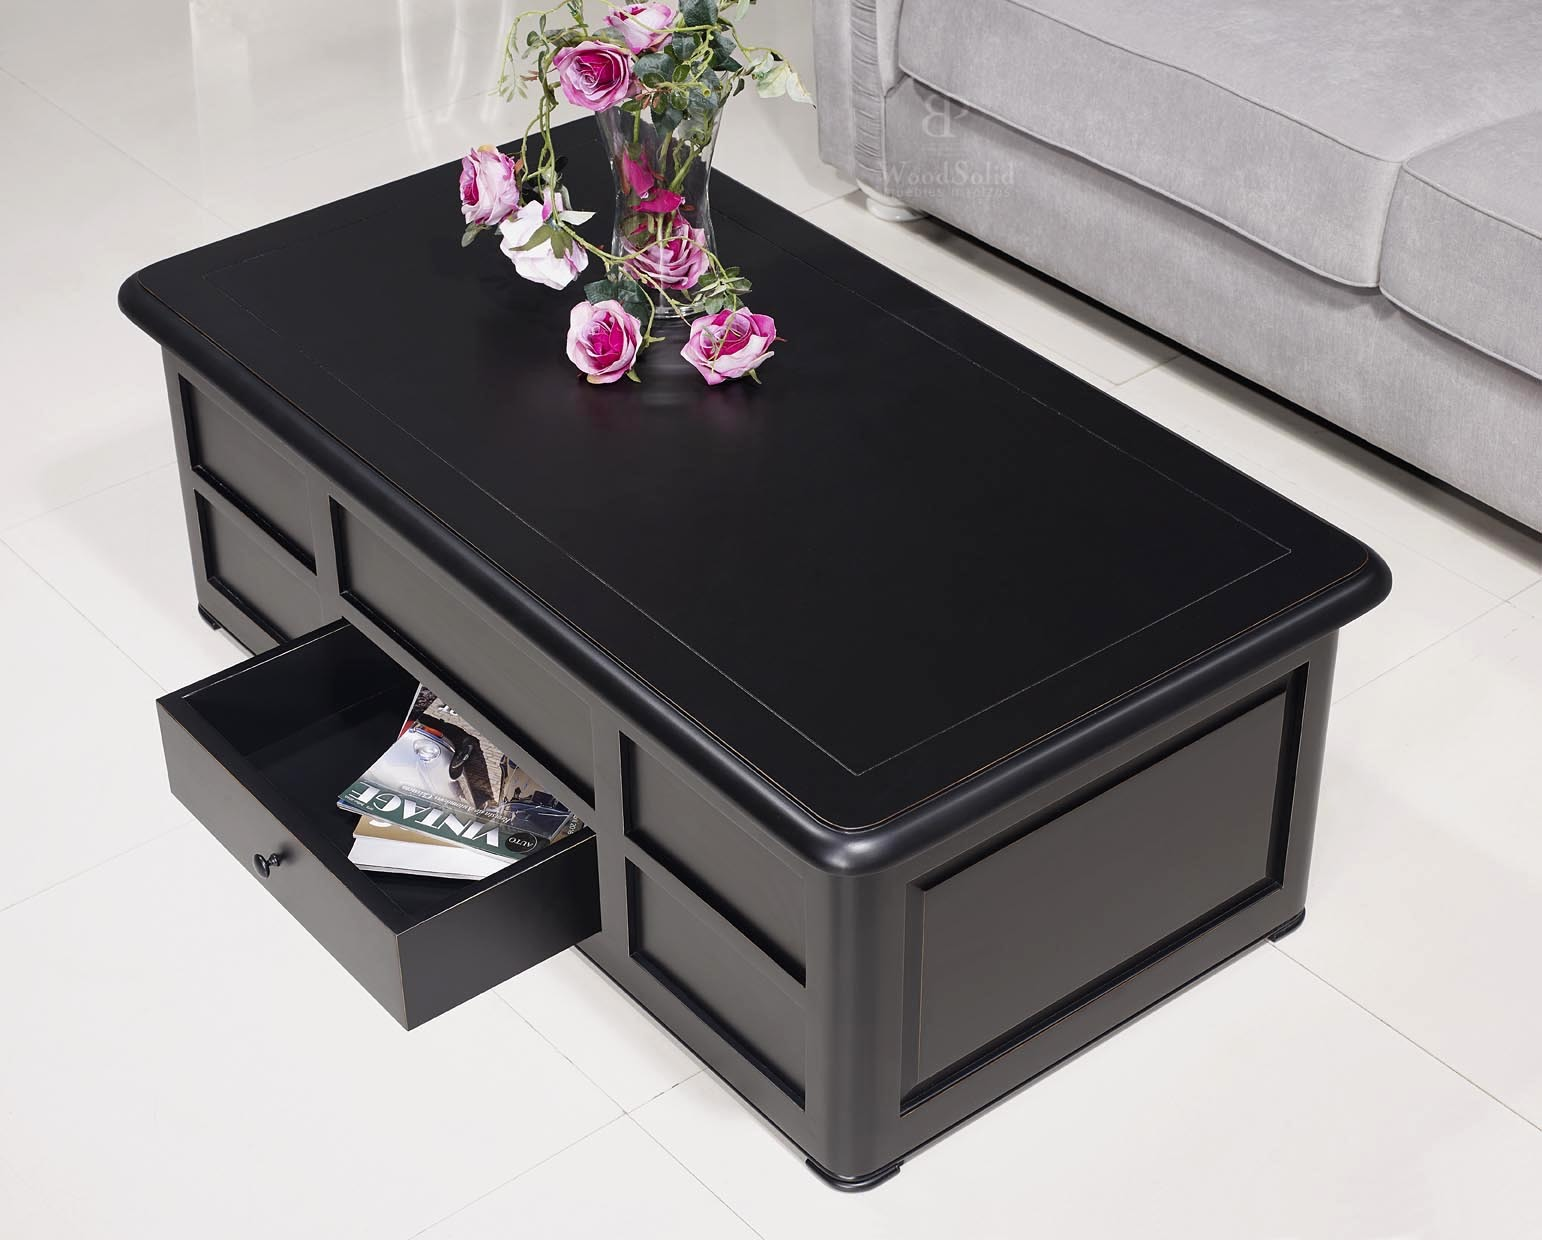 table basse bar ine en merisier de style louis philippe laqu noir meuble en merisier. Black Bedroom Furniture Sets. Home Design Ideas